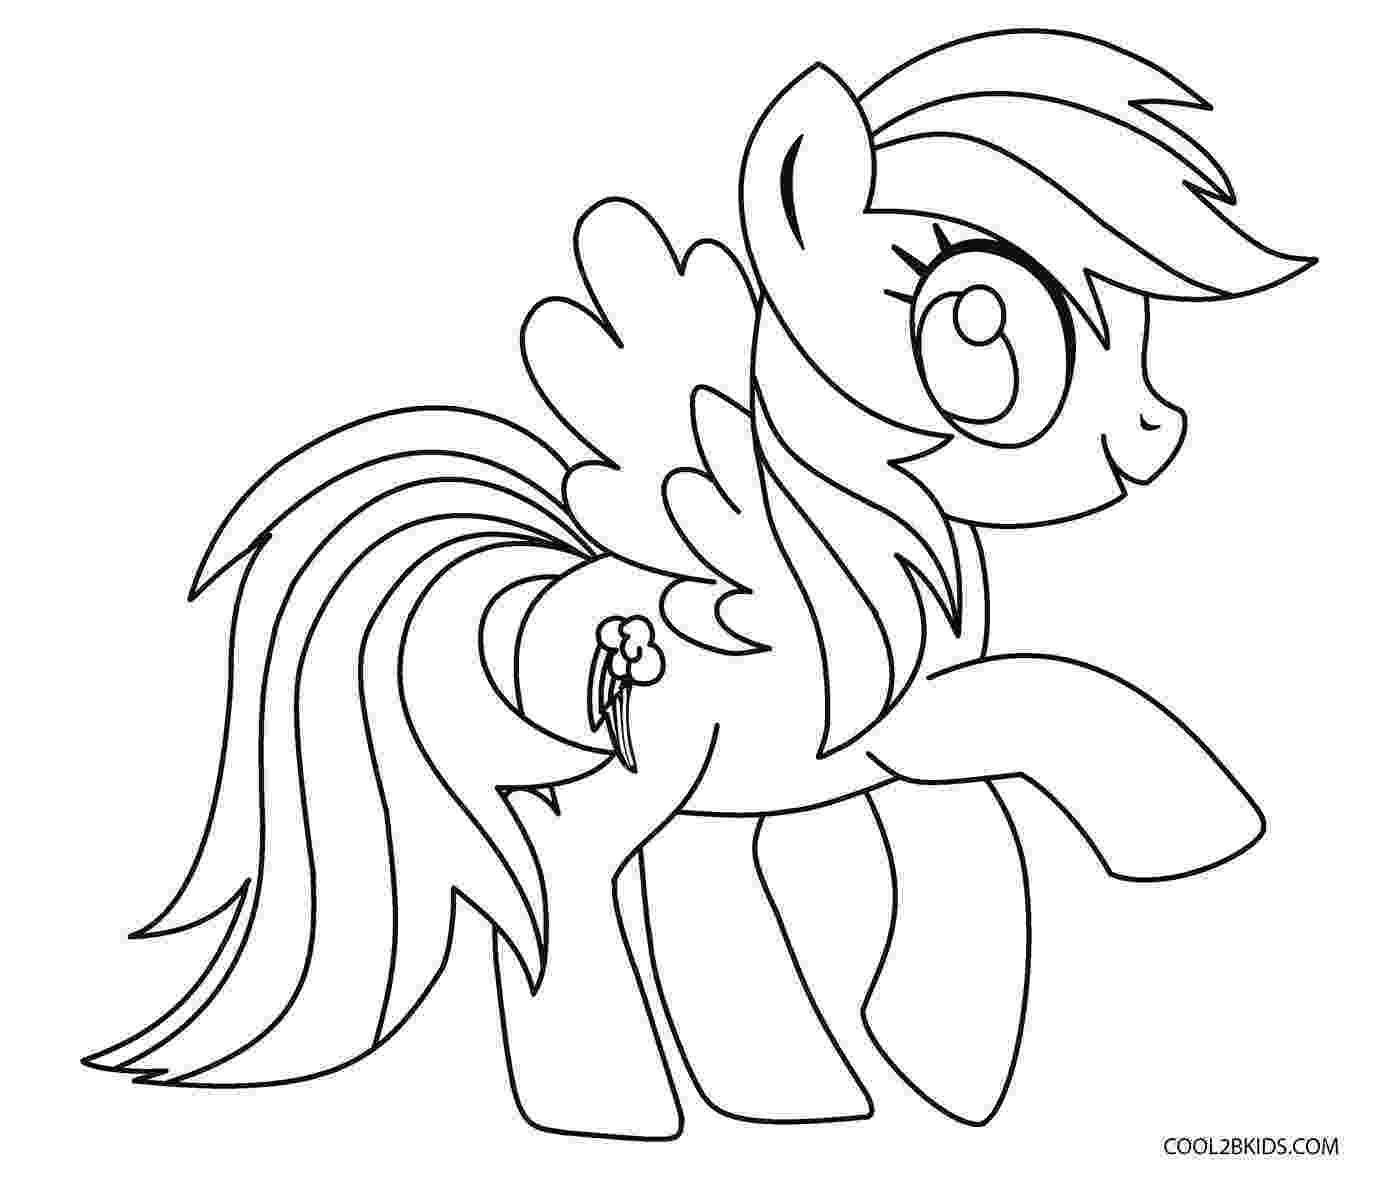 pony pictures to colour cute pony coloring page wecoloringpagecom to pictures colour pony